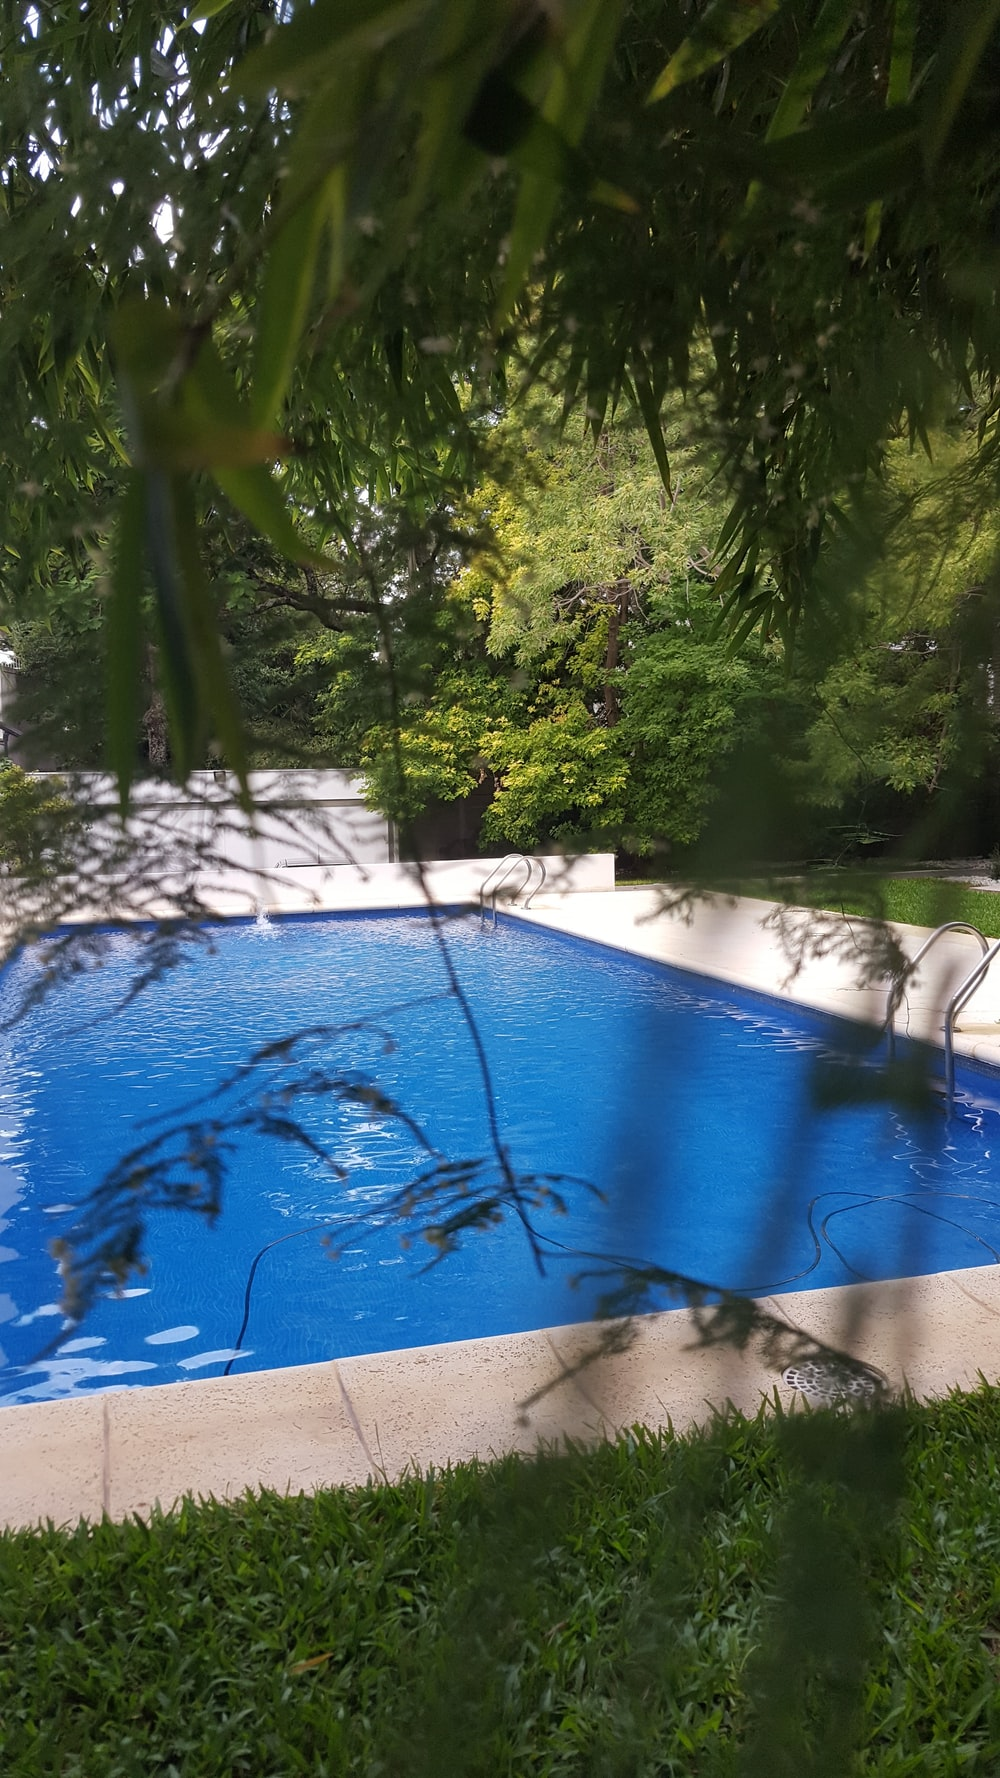 blue swimming pool surrounded by green trees during daytime